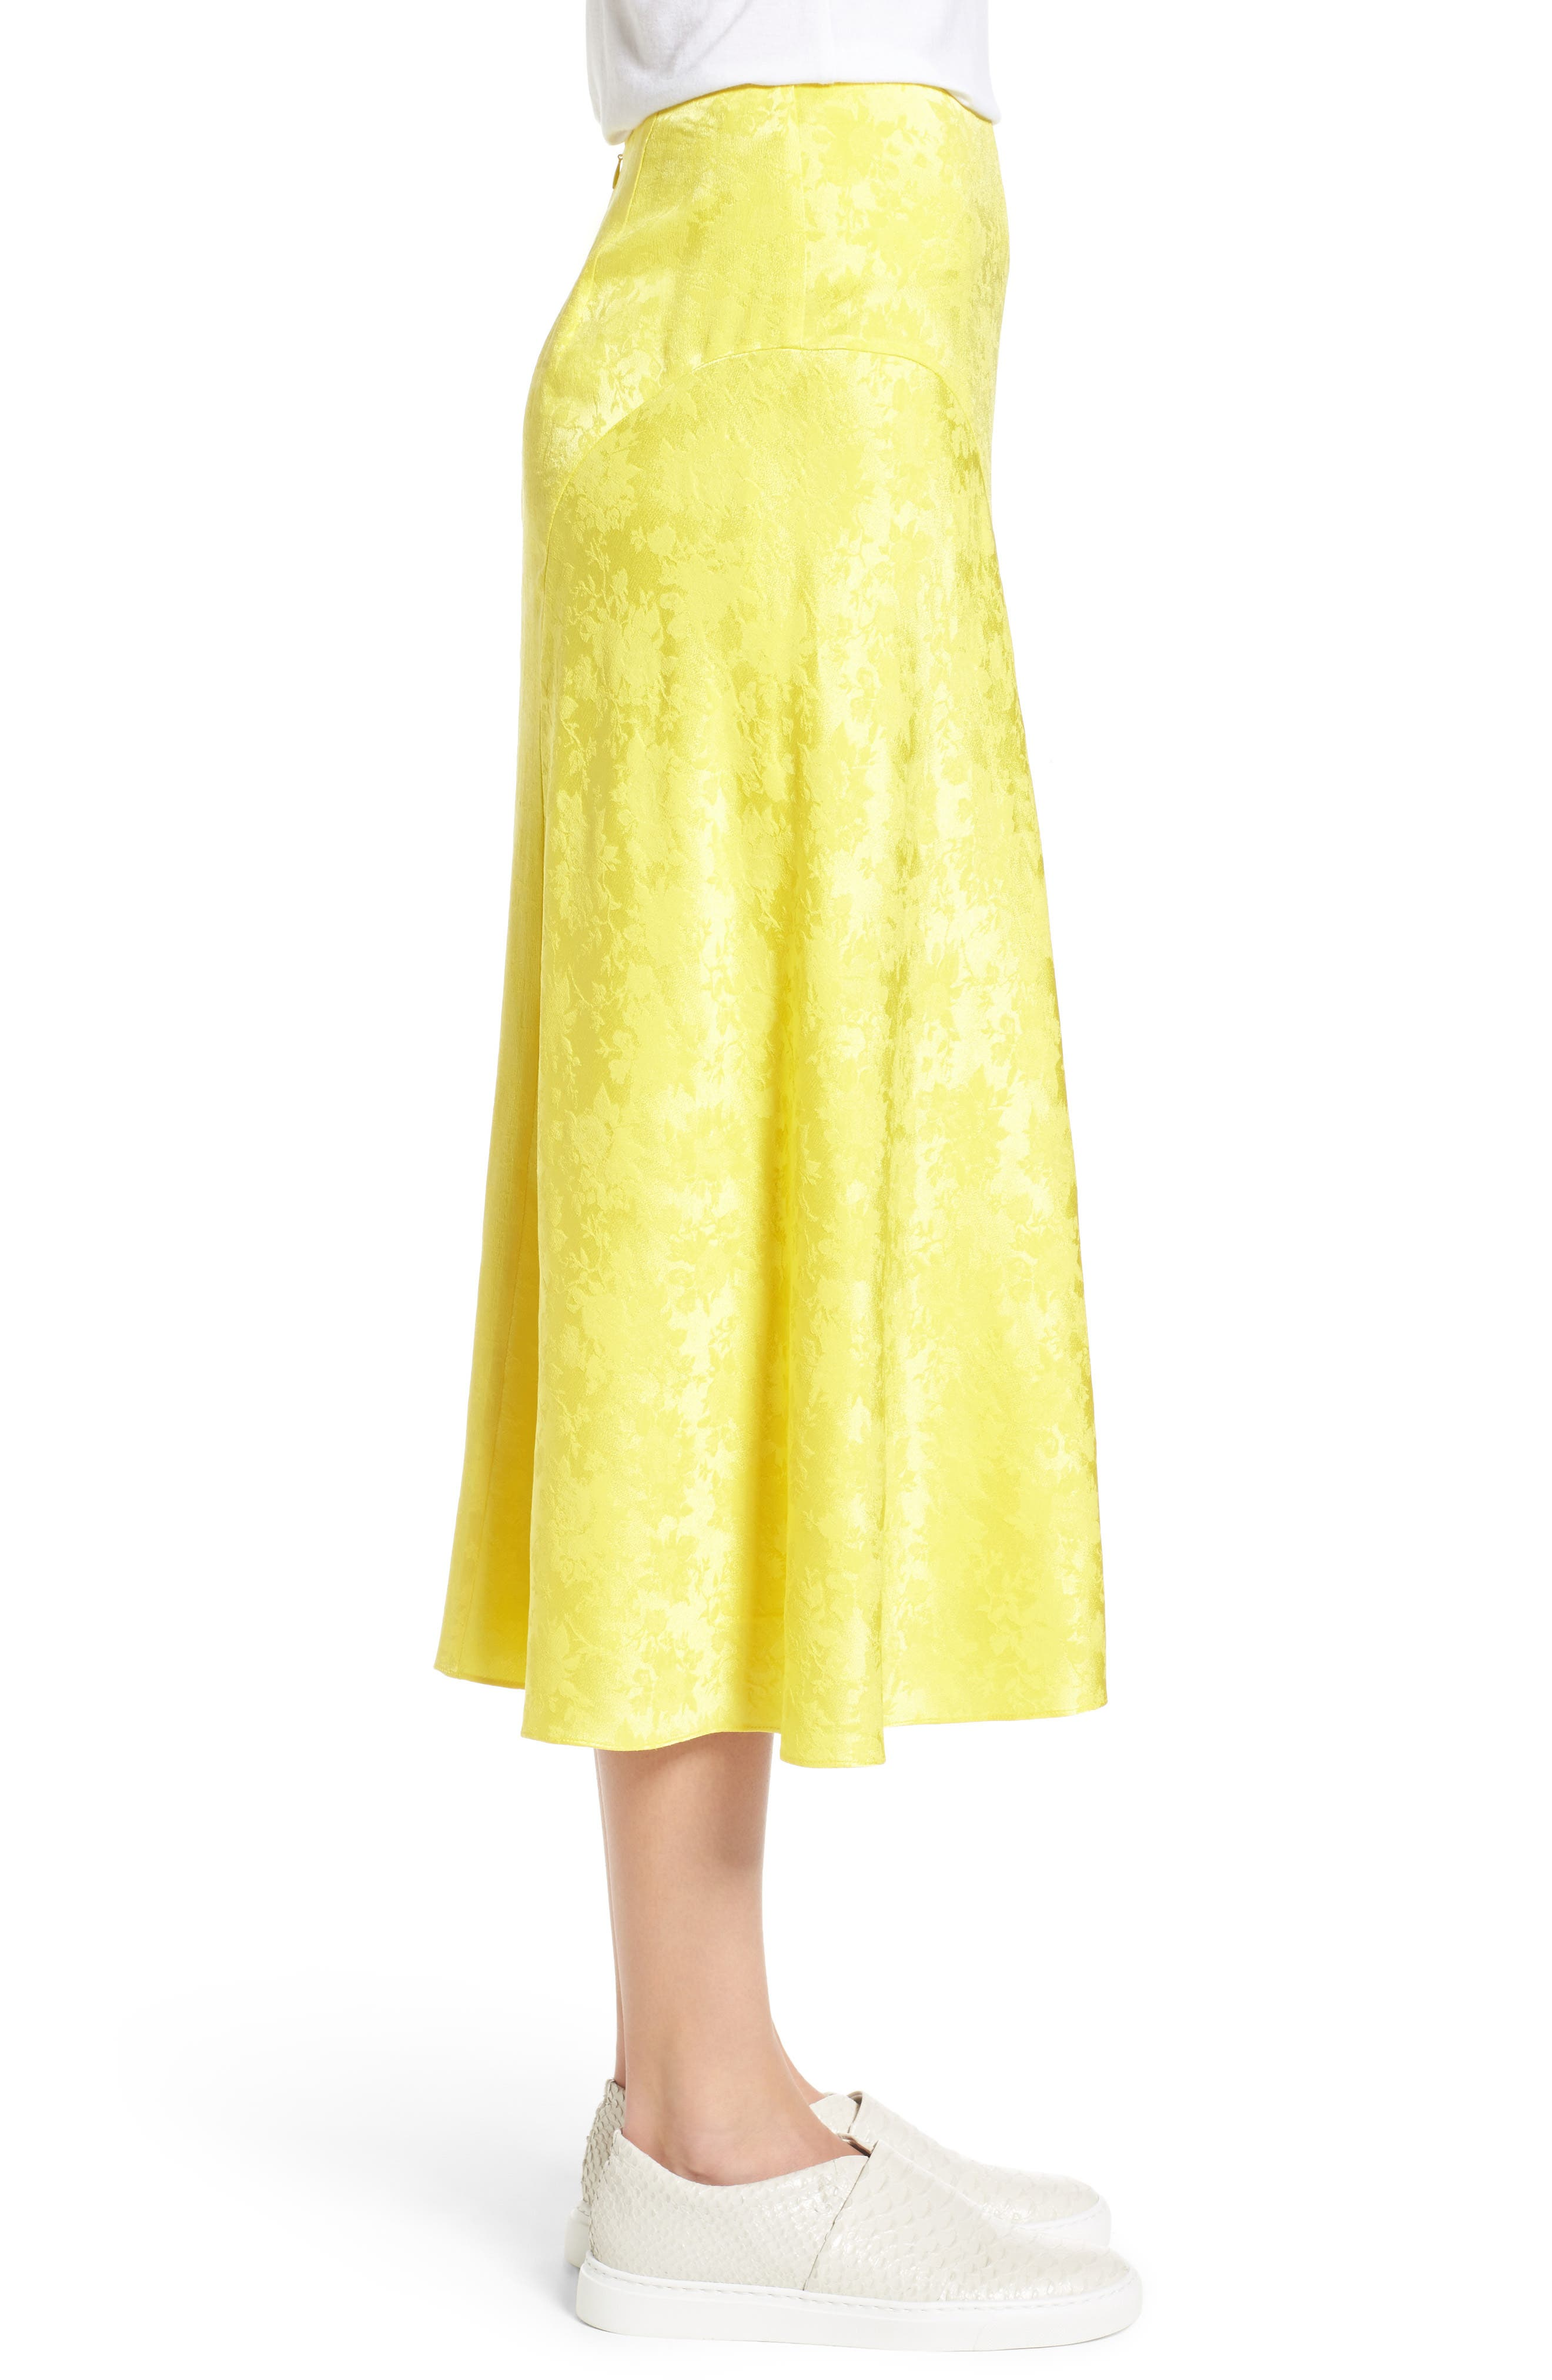 Jacquard Silk Midi Skirt,                             Alternate thumbnail 3, color,                             720